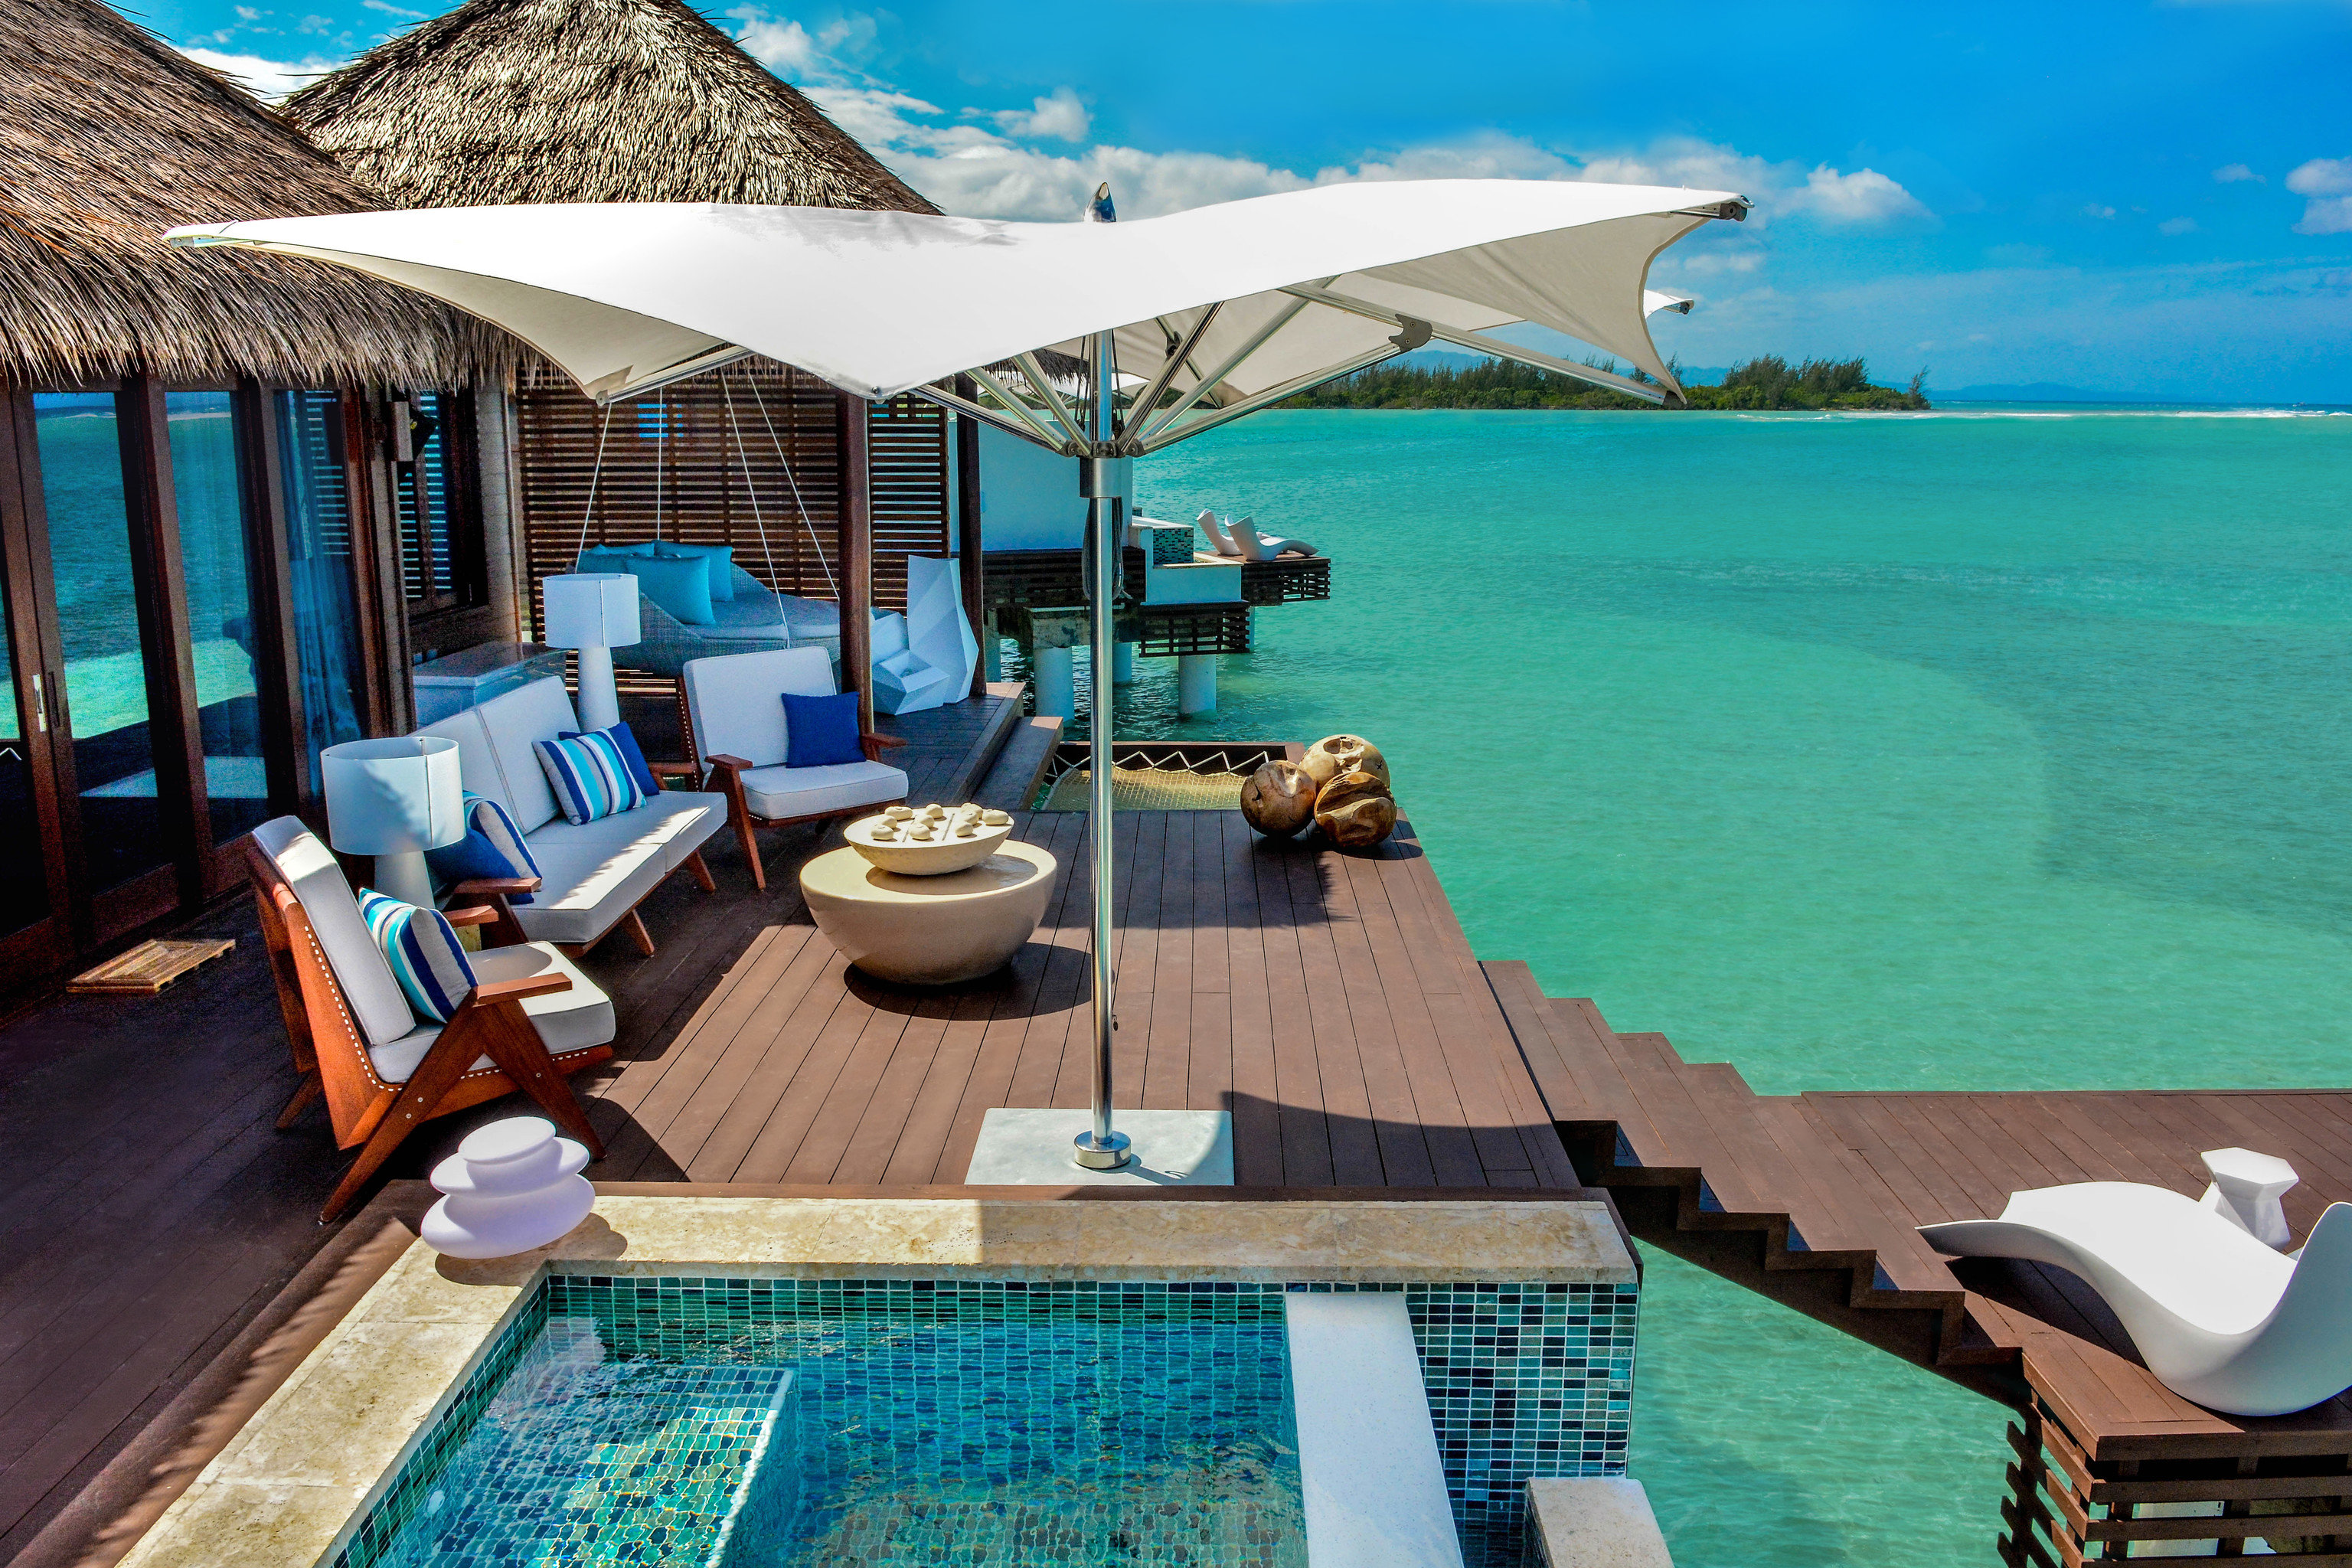 7 Gorgeous Overwater Bungalow Resorts